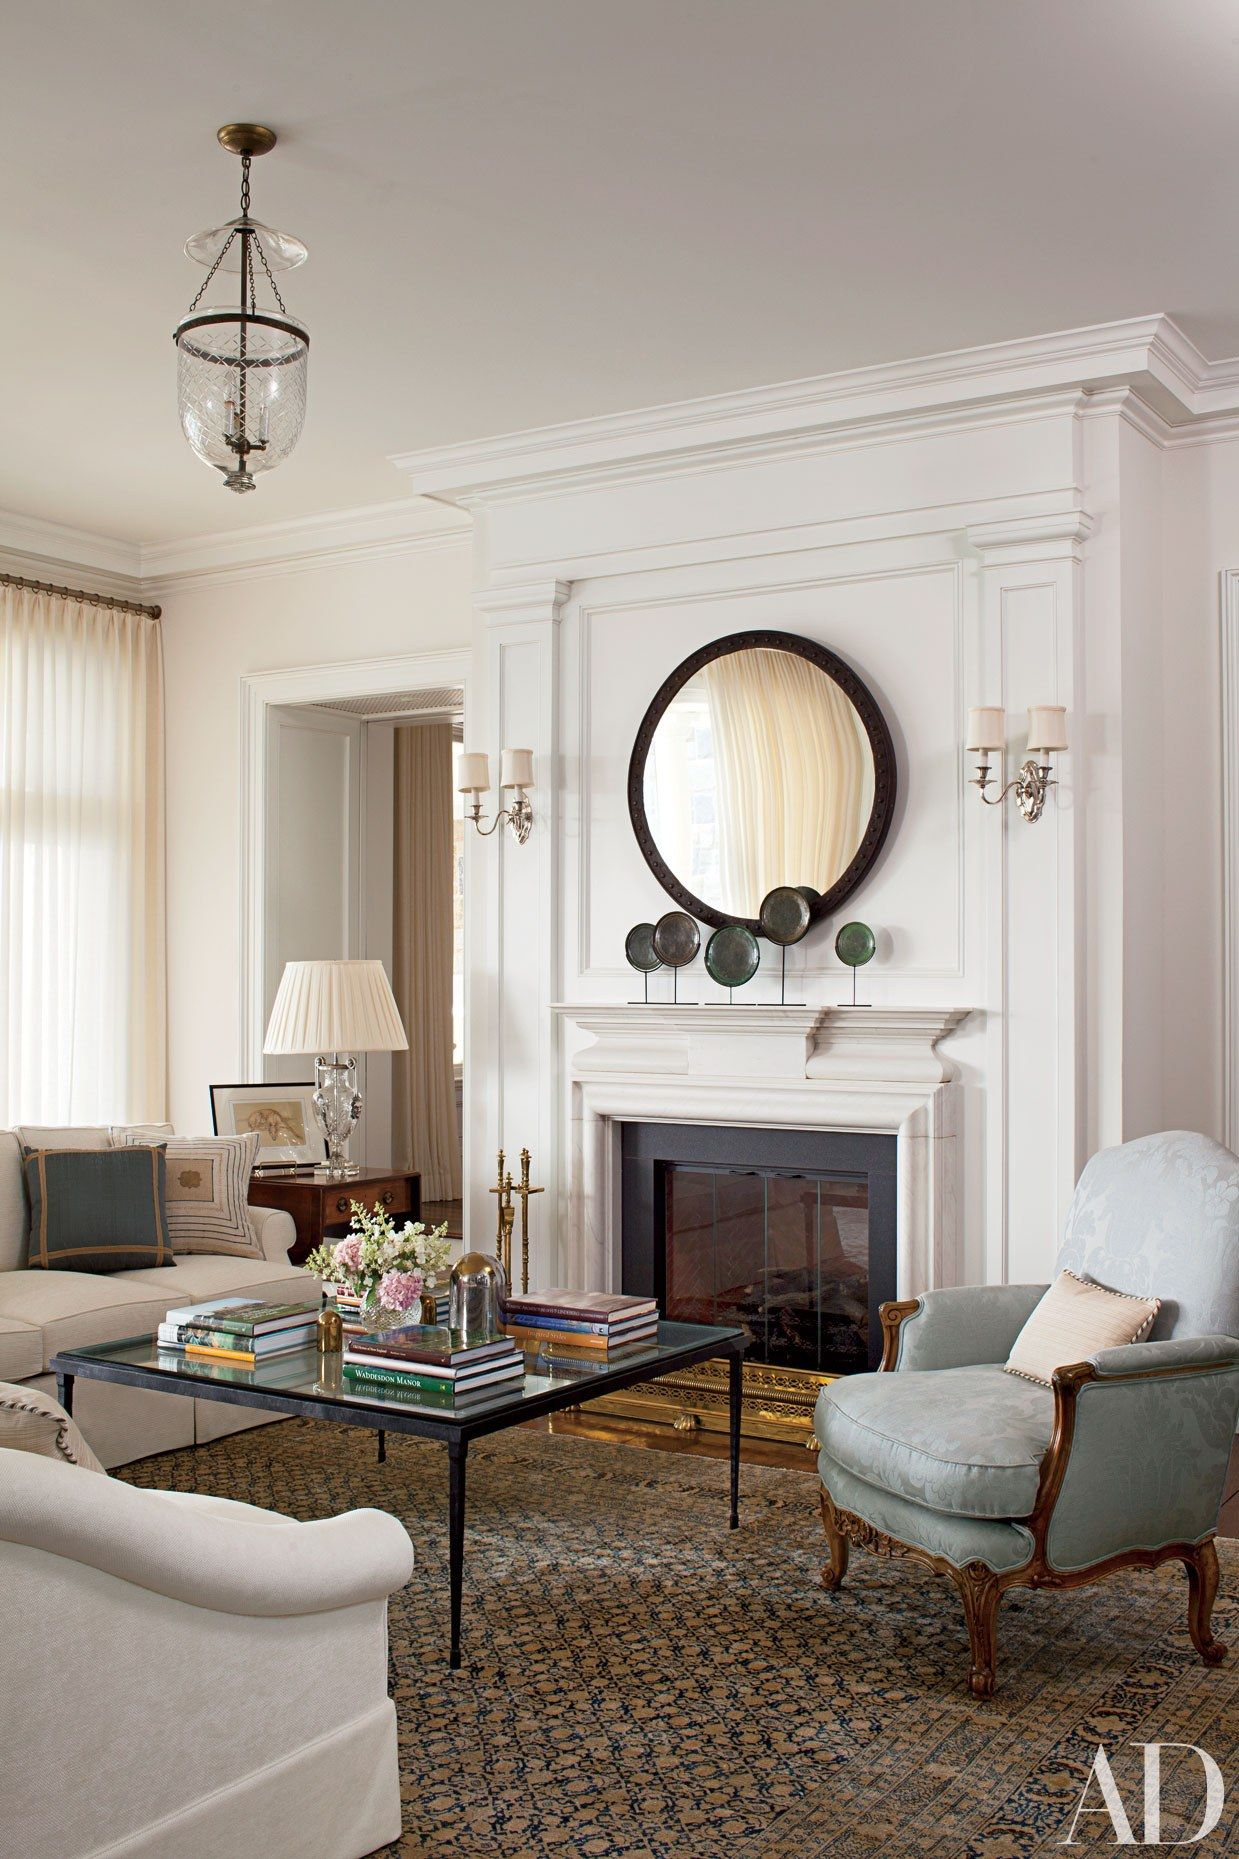 Fireplace Mantel Decor Inspiration | Long island, Living rooms and ...